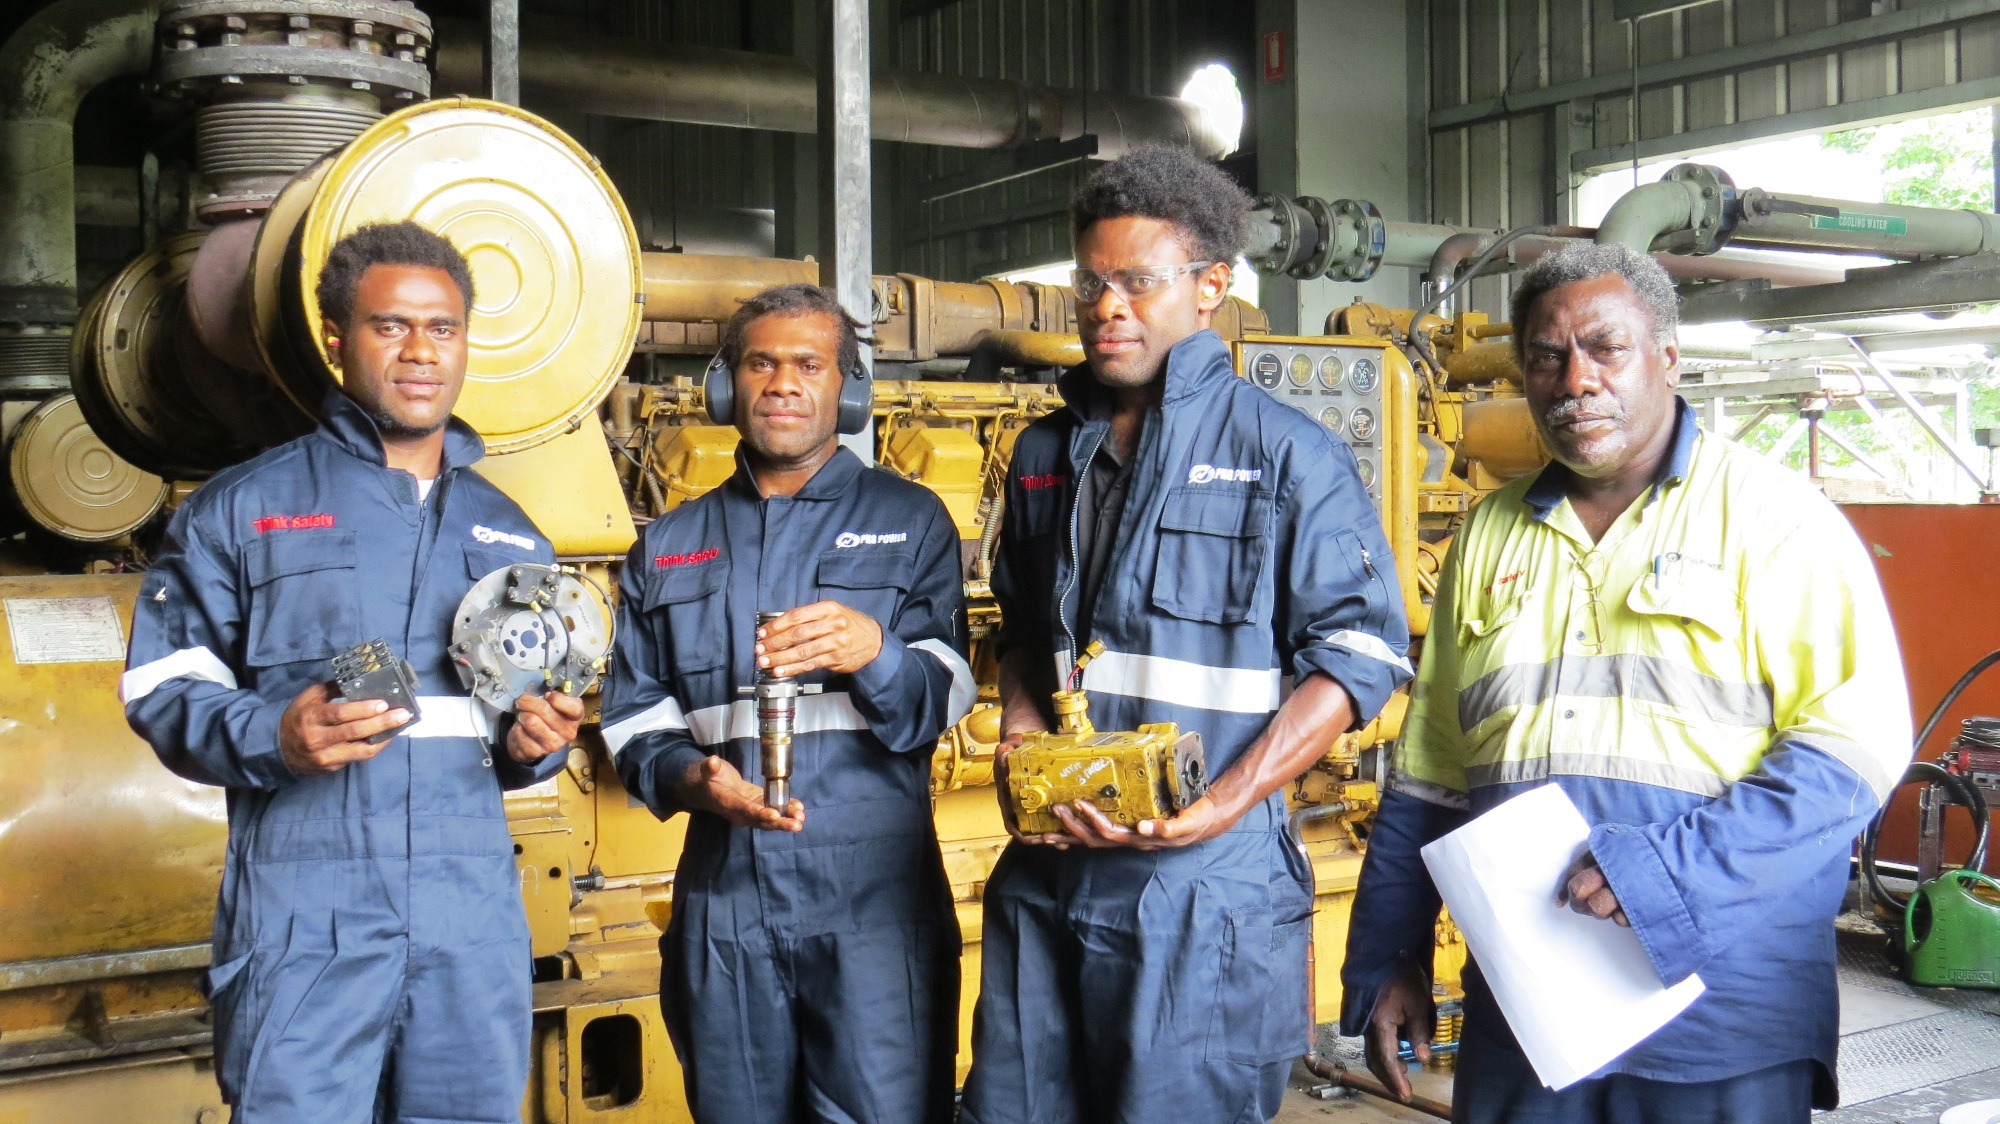 TRAINEESHIP PROGRAM BOOSTING WORKFORCE